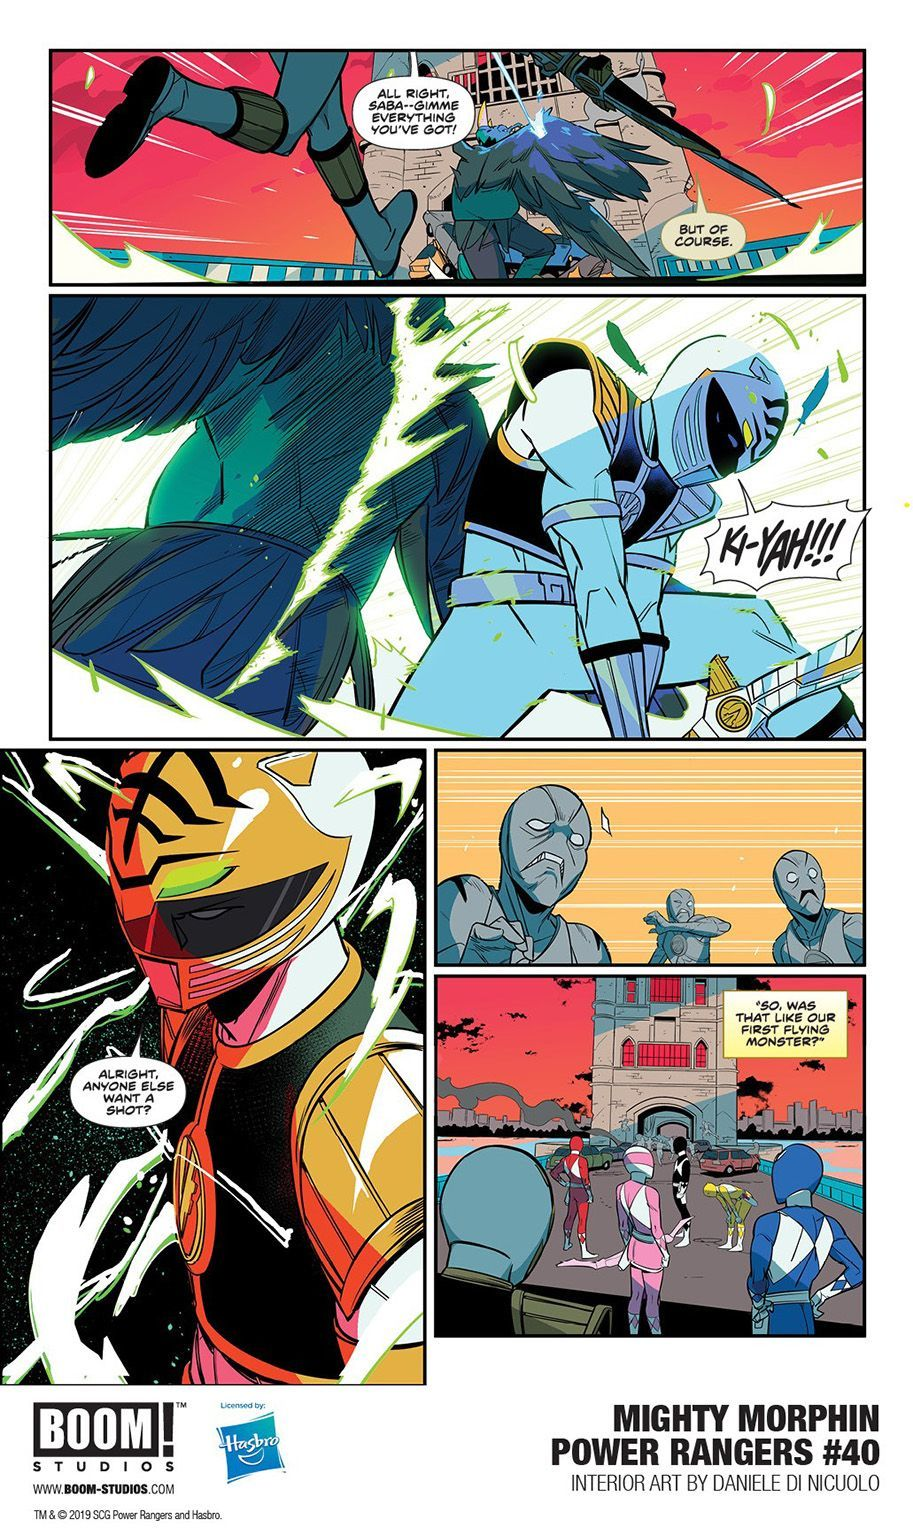 Mighty-Morphin-Power-Rangers-40-Preview-Interior-4